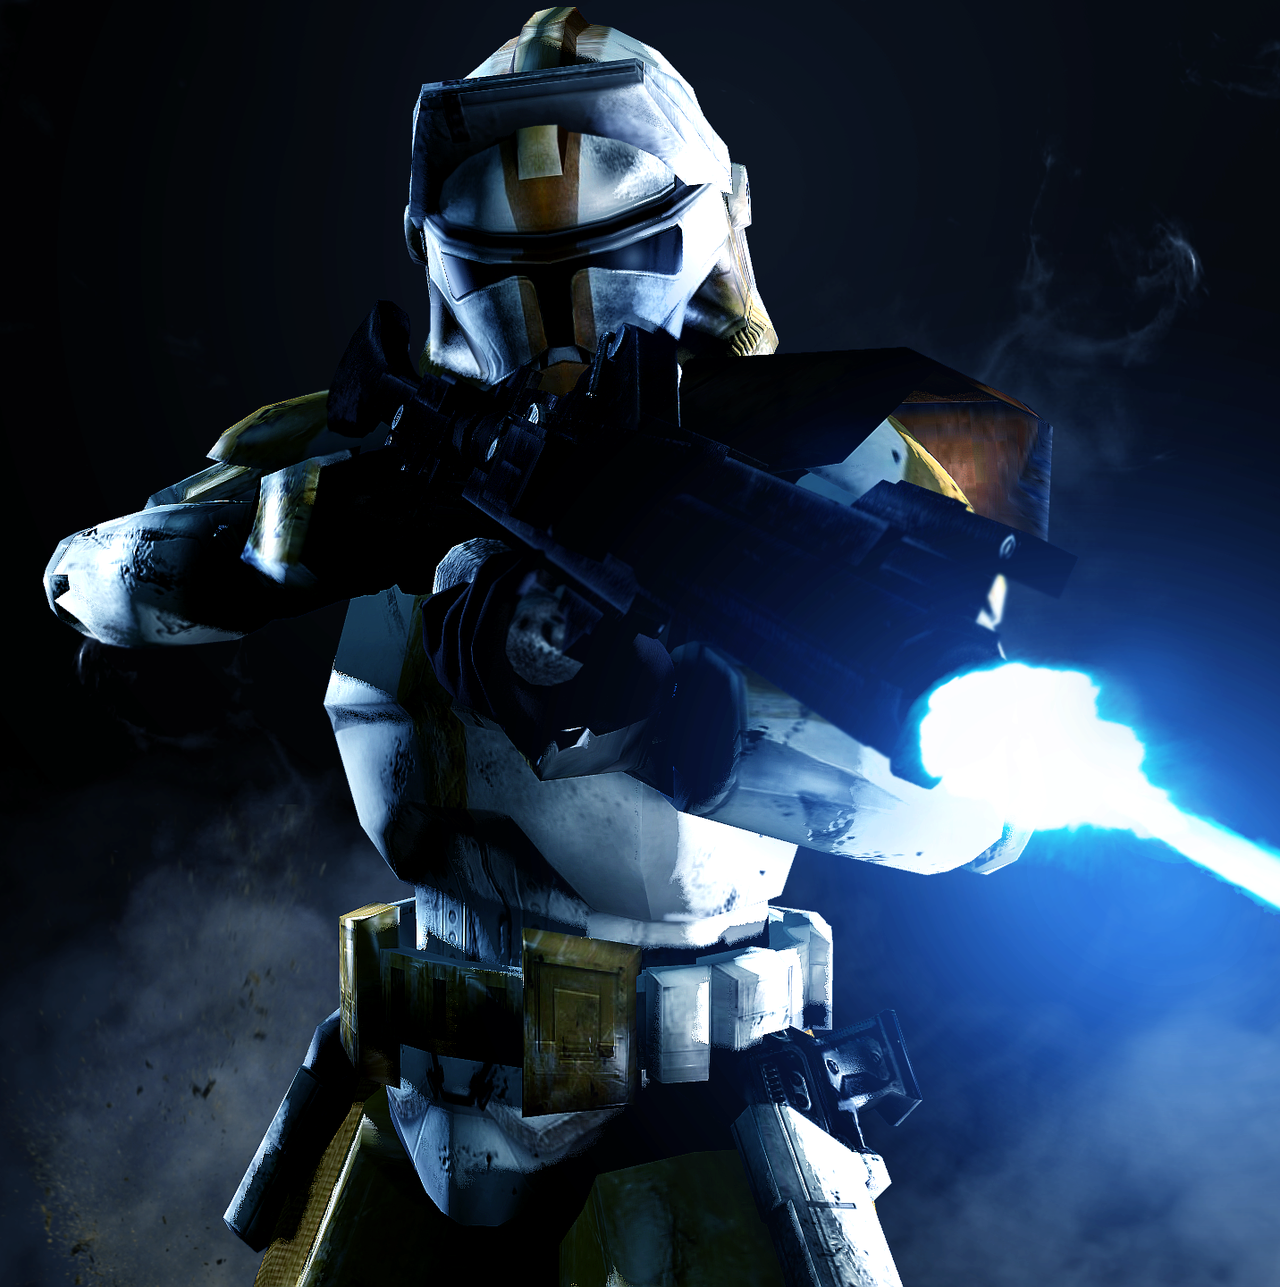 Best 65+ Commander Bly Wallpapers on HipWallpapers